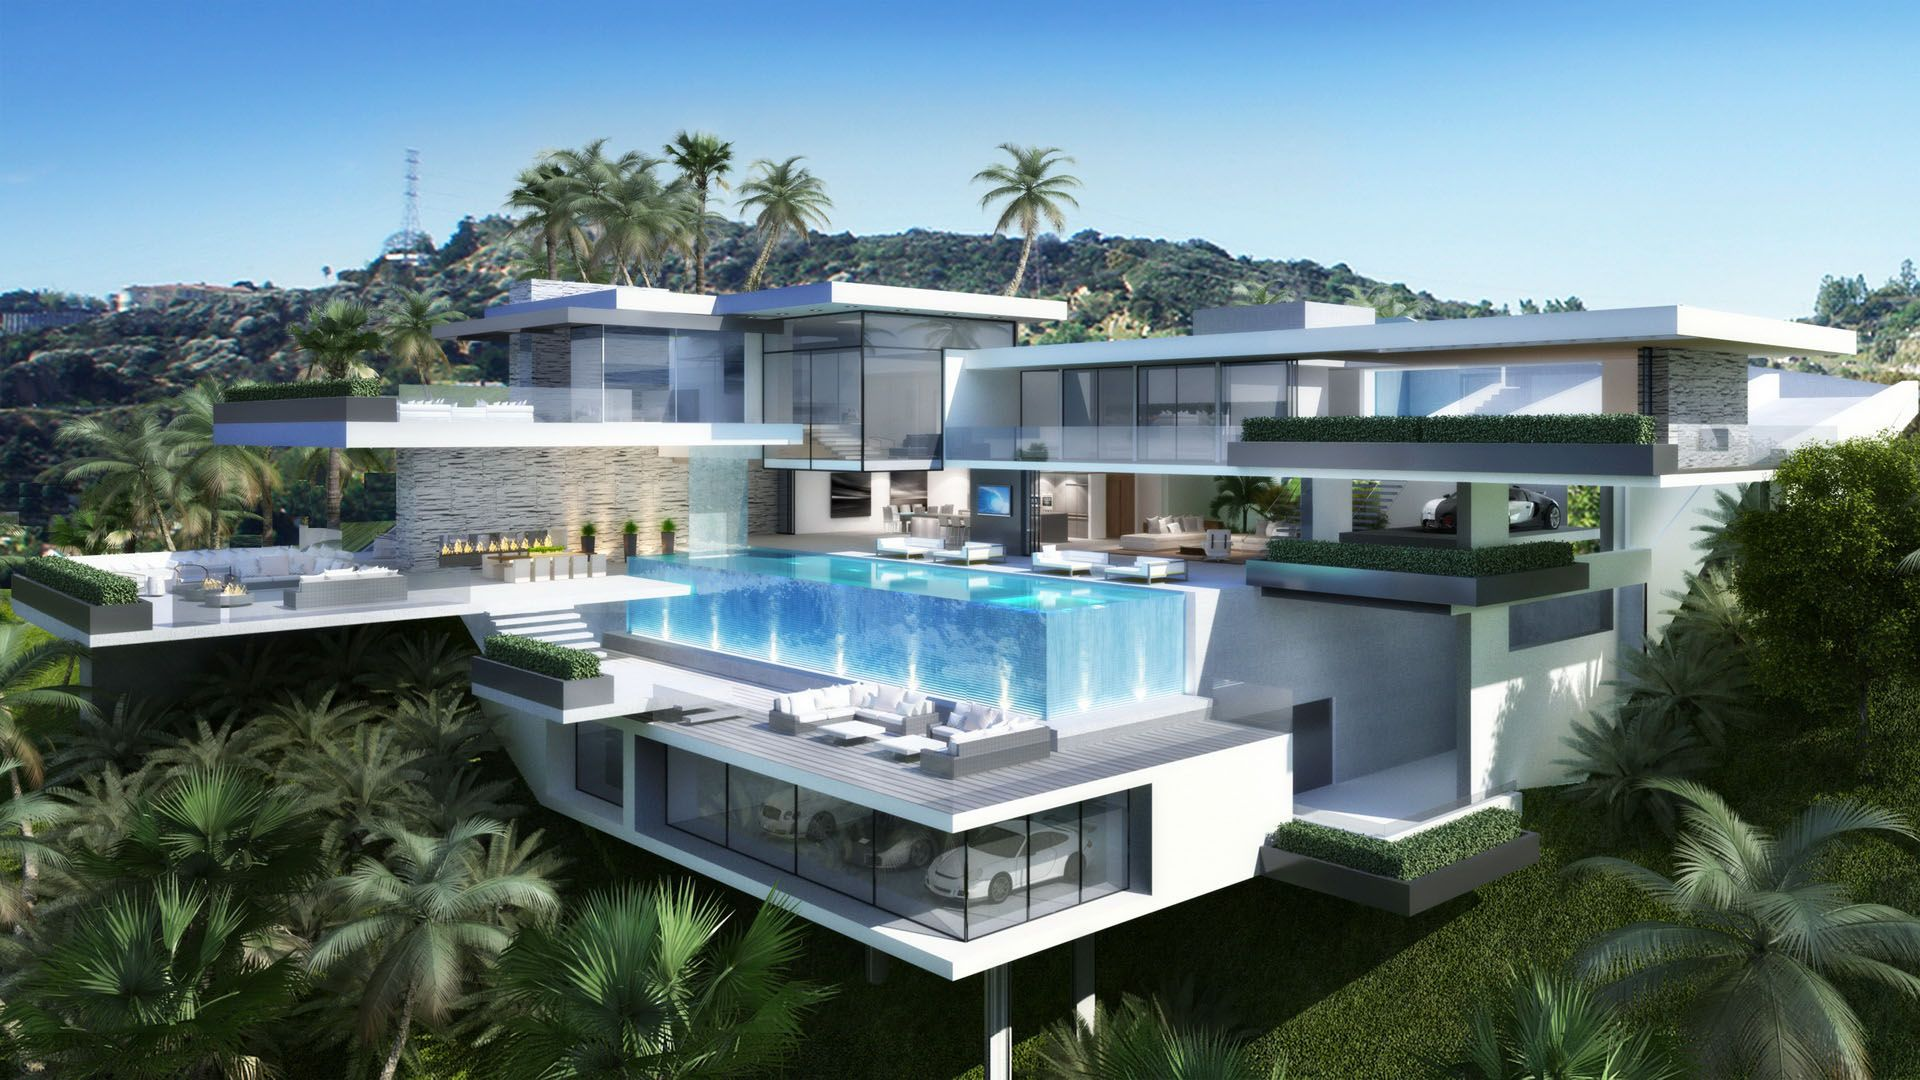 modern mansion sunset plaza drive with modern mansion design architecture